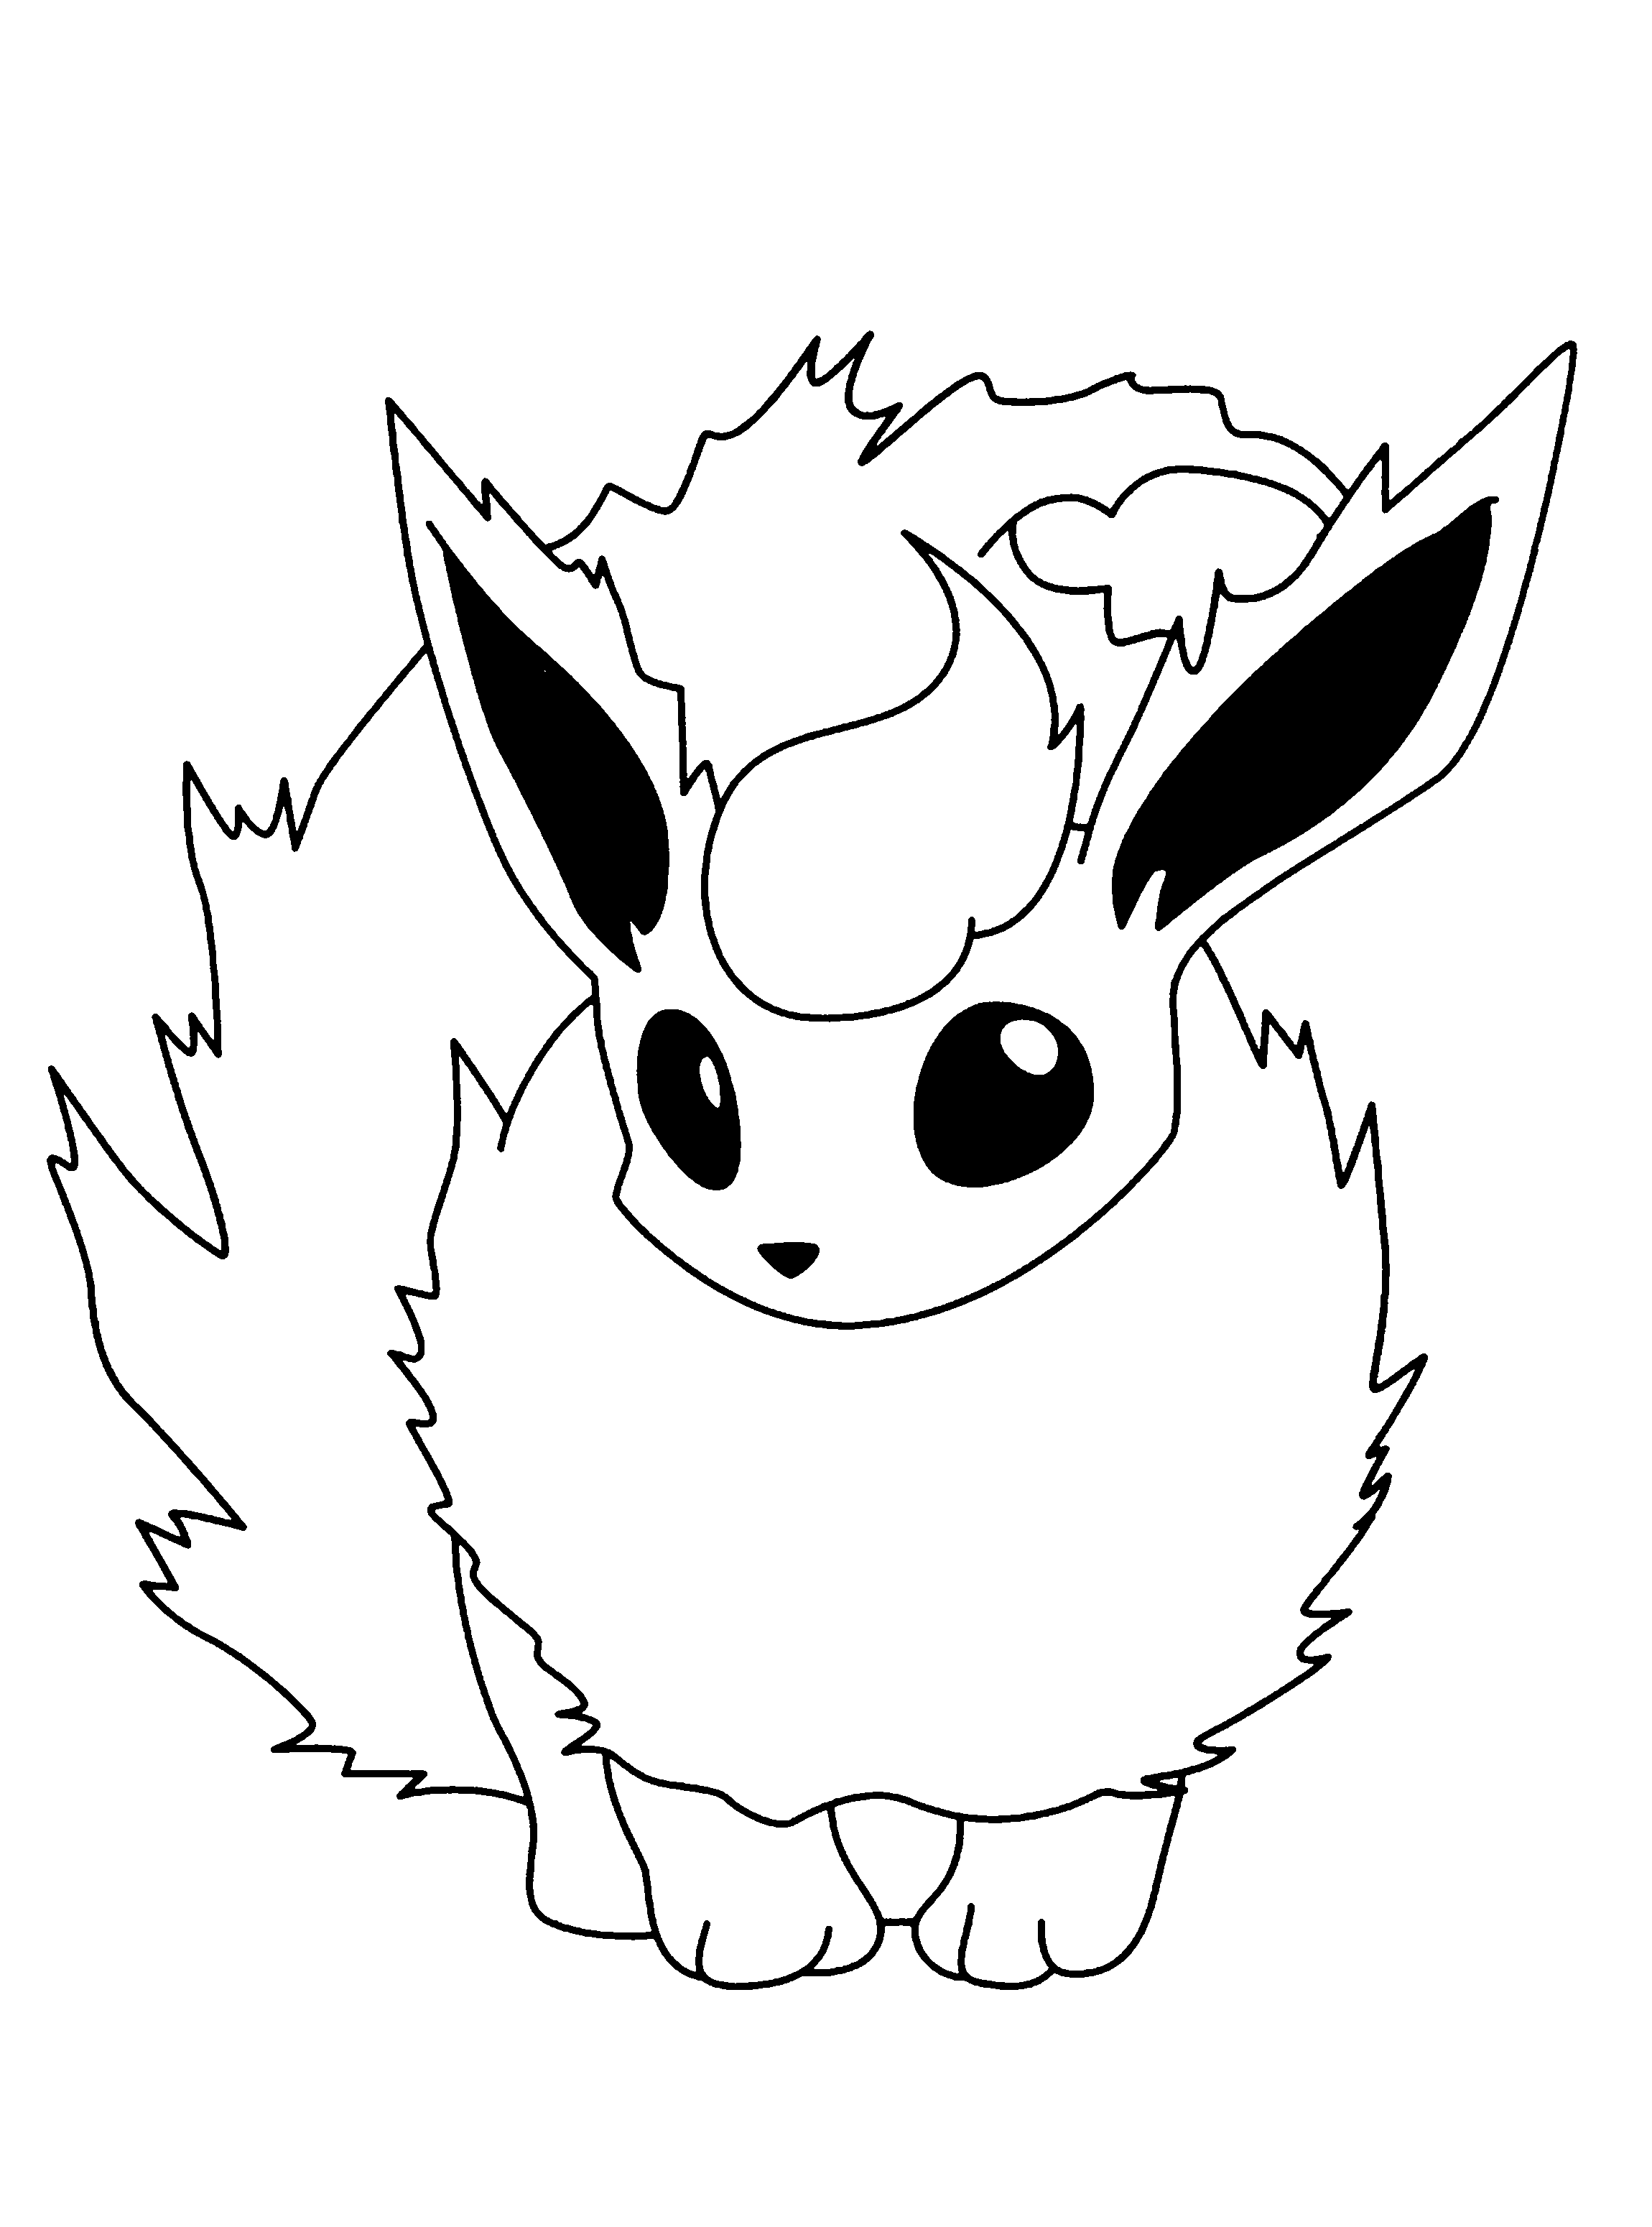 Pokemon Ausmalbilder Evoli Entwicklungen : Pokemon Coloring Pages Download Pokemon Images And Print Them For